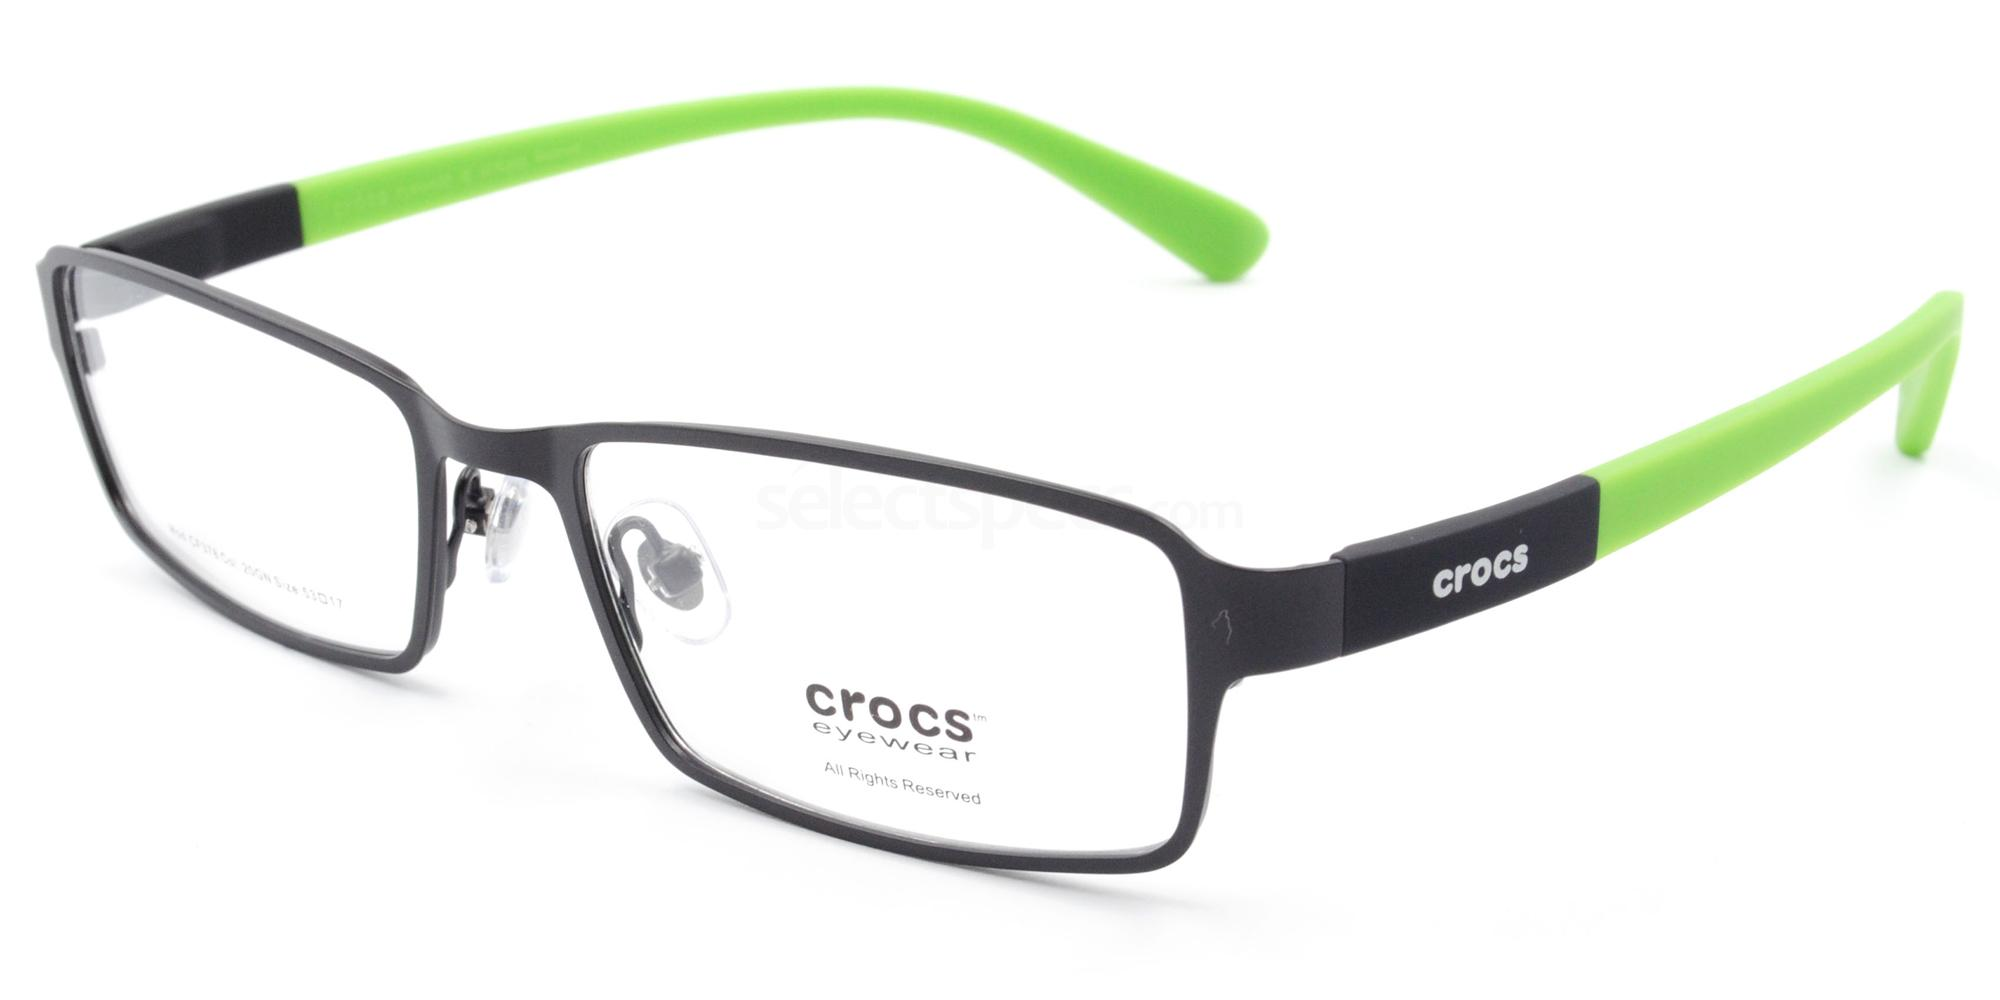 Crocs Eyewear Glasses | Free prescription lenses & delivery ...